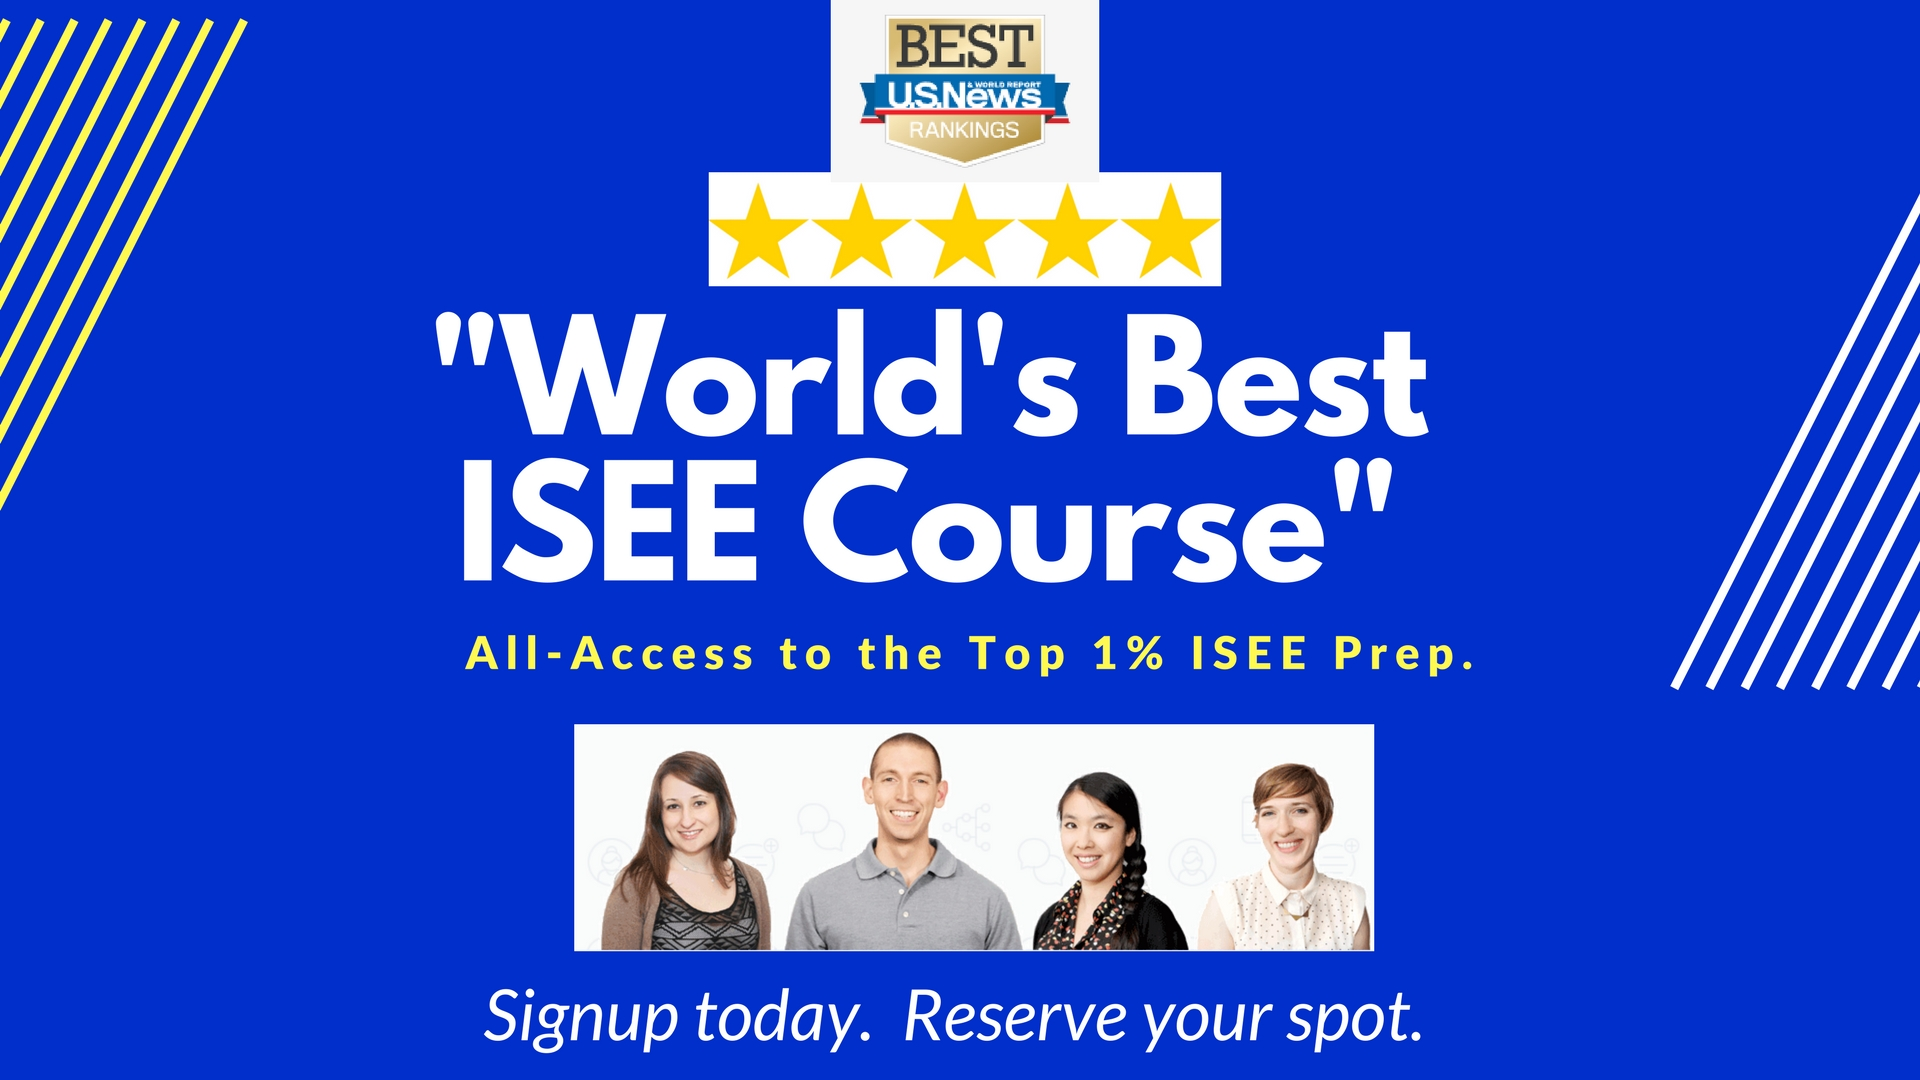 """Best ISEE Prep Course"" Ranked by US News."